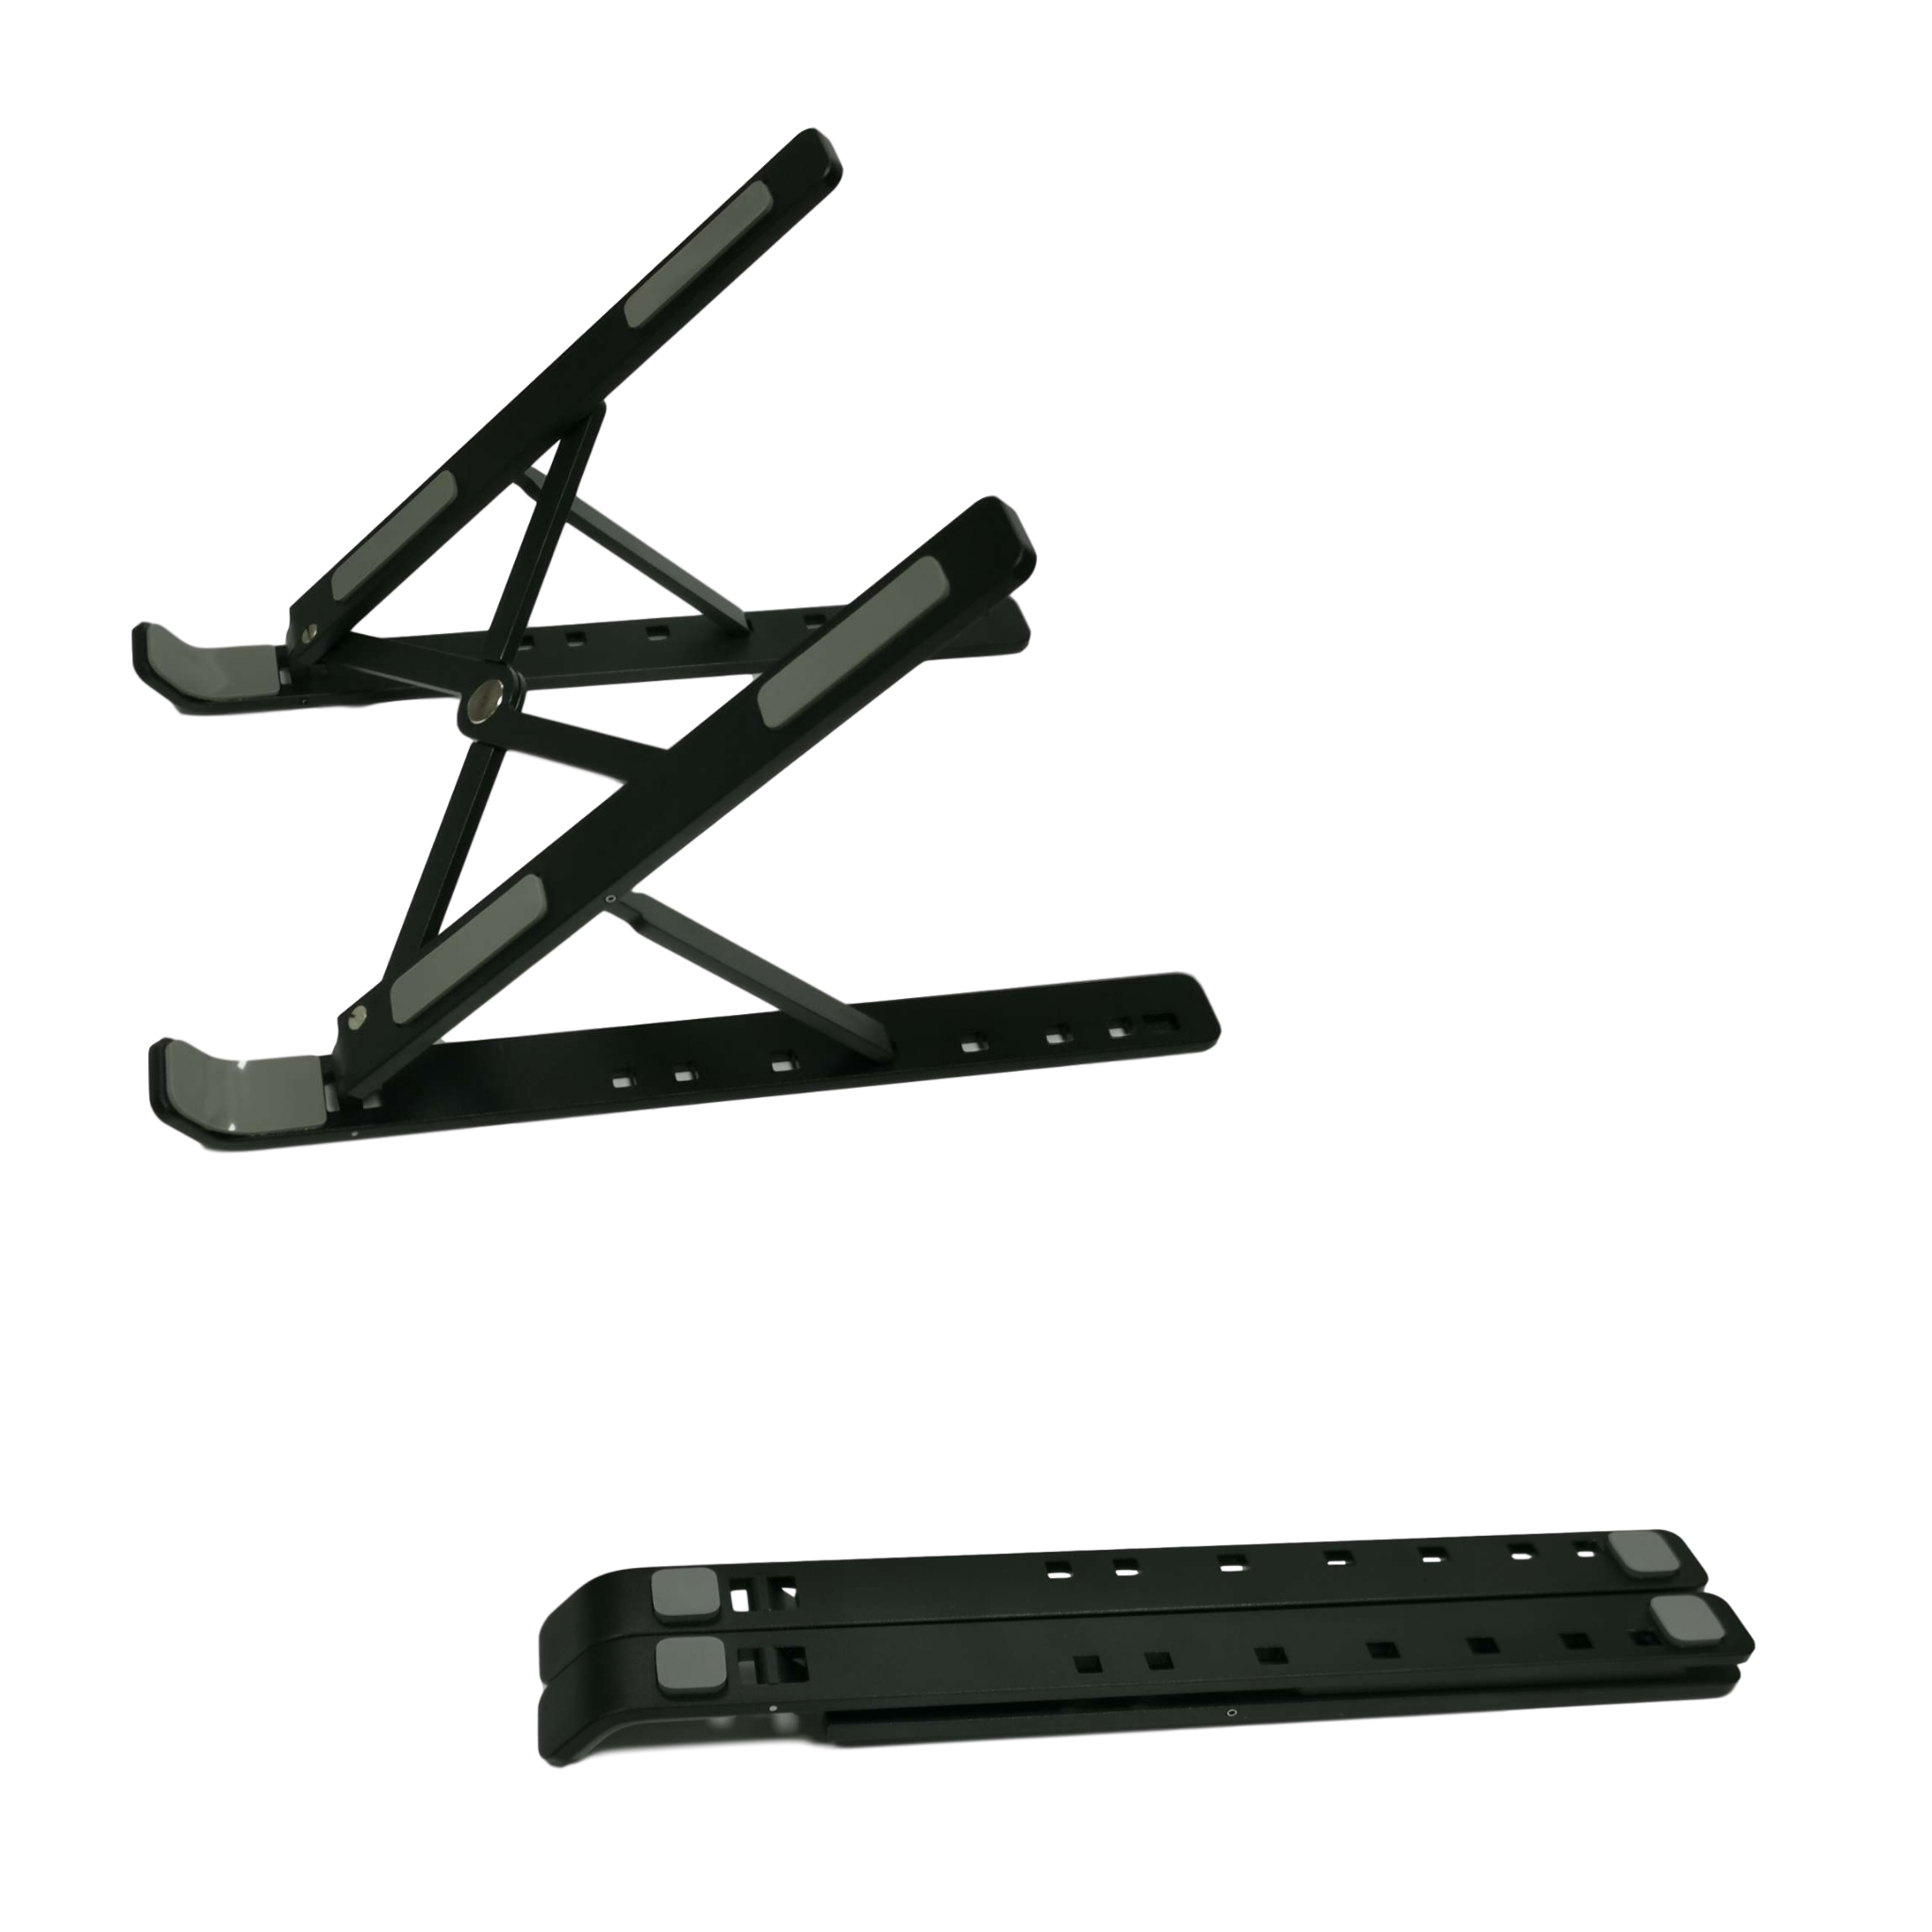 17 inch <strong>laptop</strong> stand table adjustable <strong>laptop</strong> stand folding portable <strong>laptop</strong> stand foldable adjustable <strong>for</strong> office